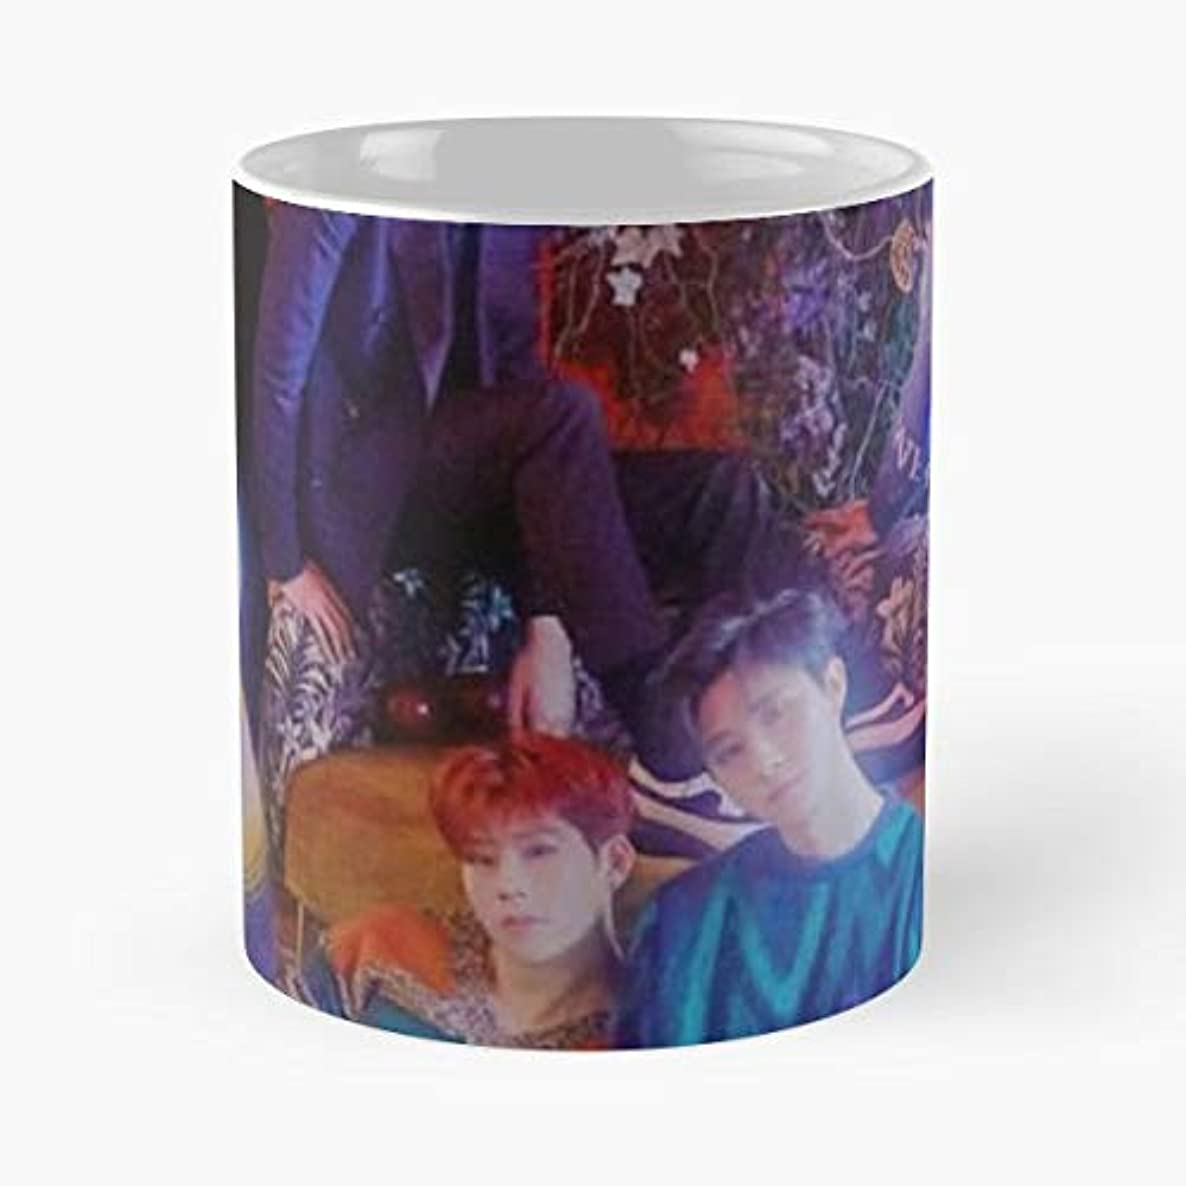 Monsta X Kpop Band Music 11 Oz Coffee Mugs Best Gift For Father Day